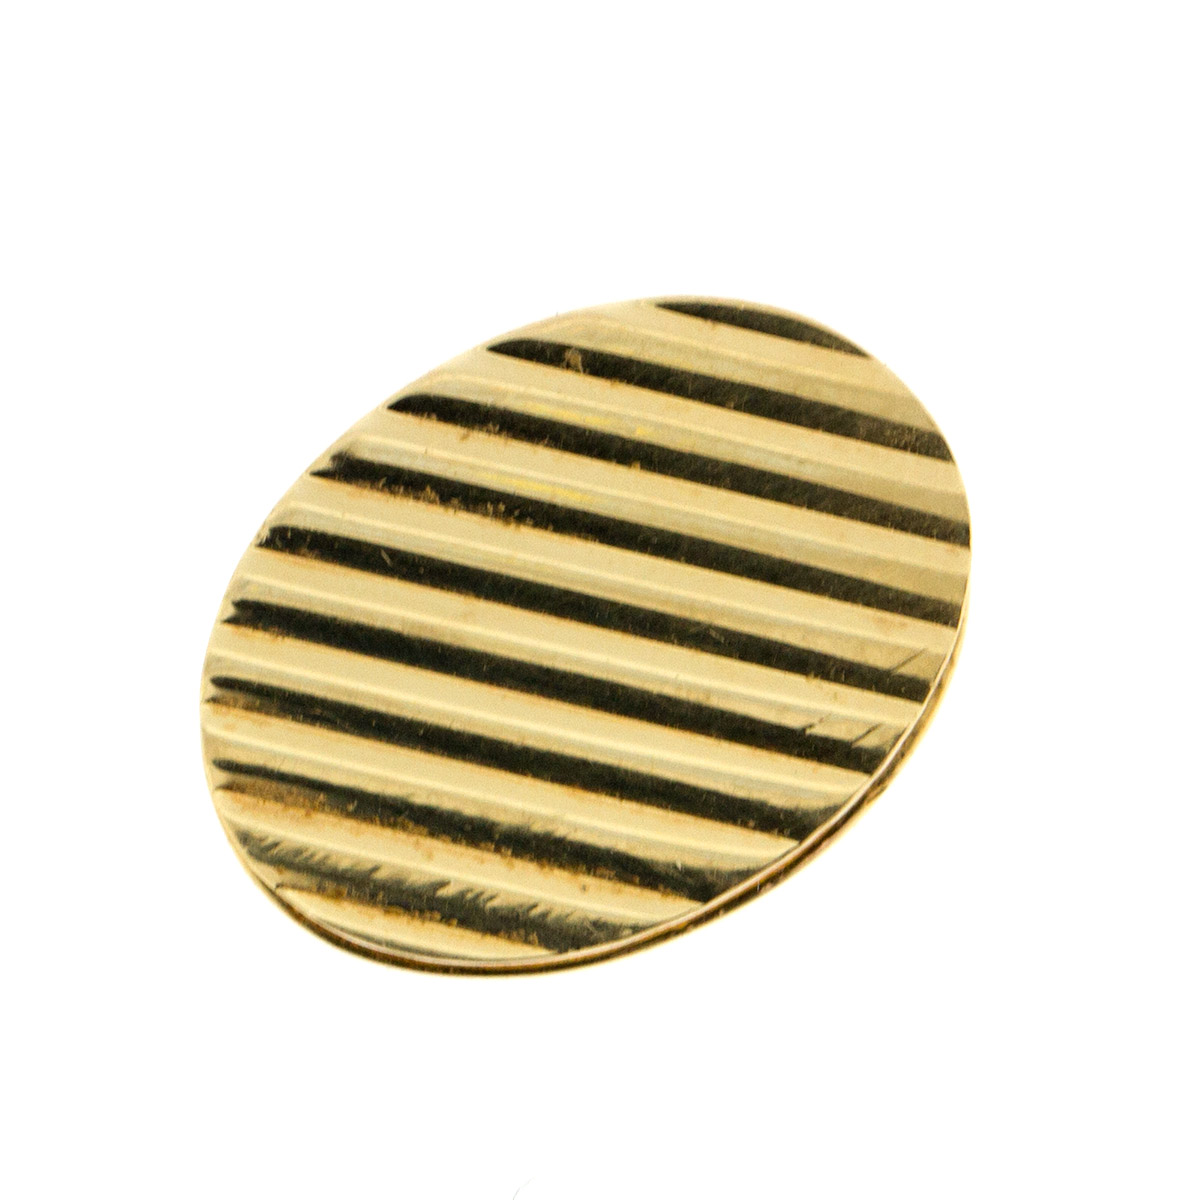 "Image of ""Tiffany & Co. 14k Yellow Gold Round Tie Clip"""